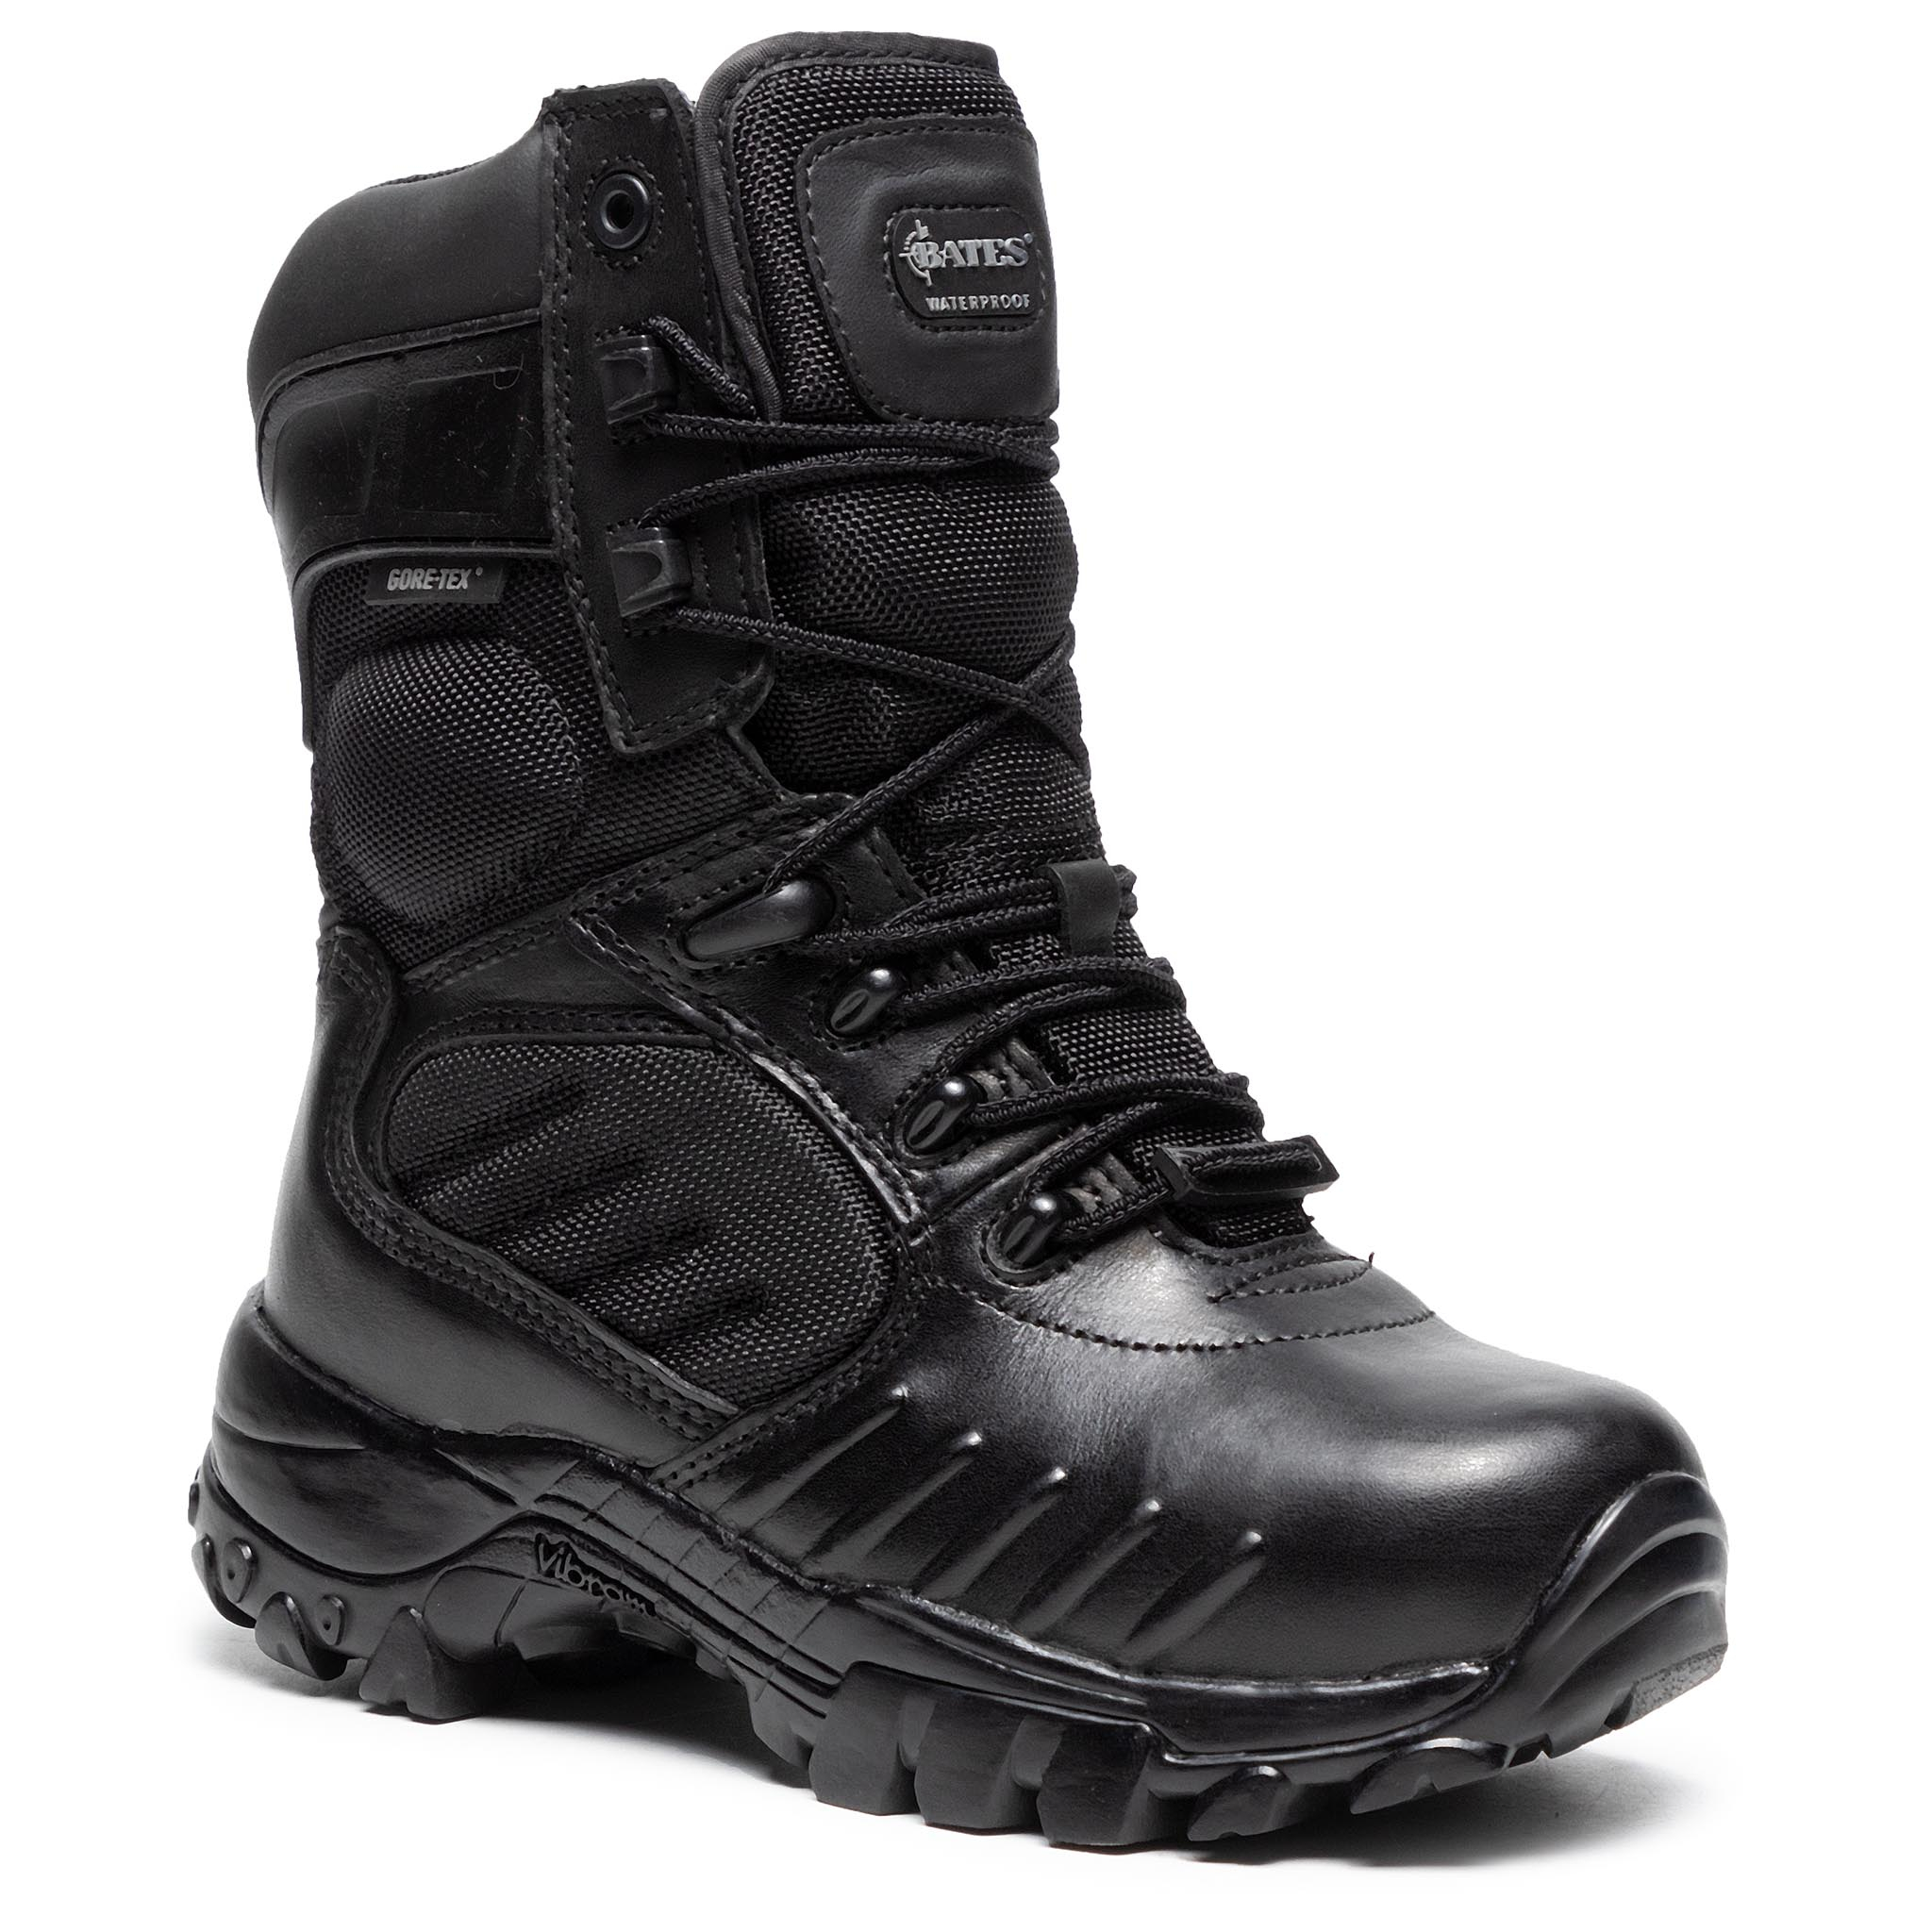 Image of Schuhe BATES - Enforcer Cts 9'' Lace GORE-TEX E02705 Black